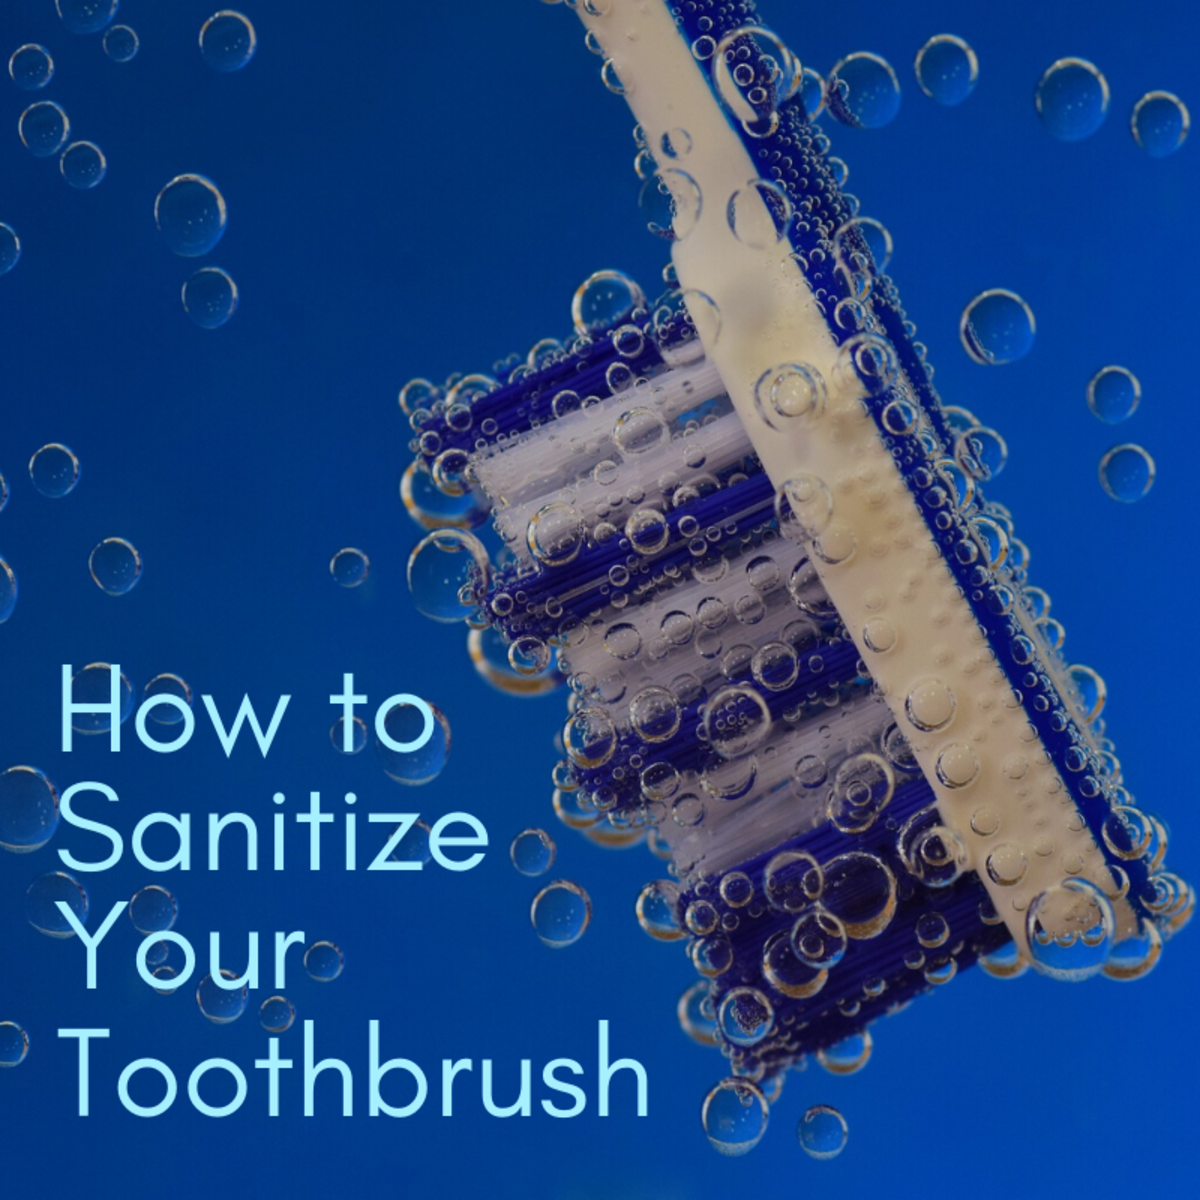 This article will provide a number of methods for disinfecting and sanitizing a dirty toothbrush.